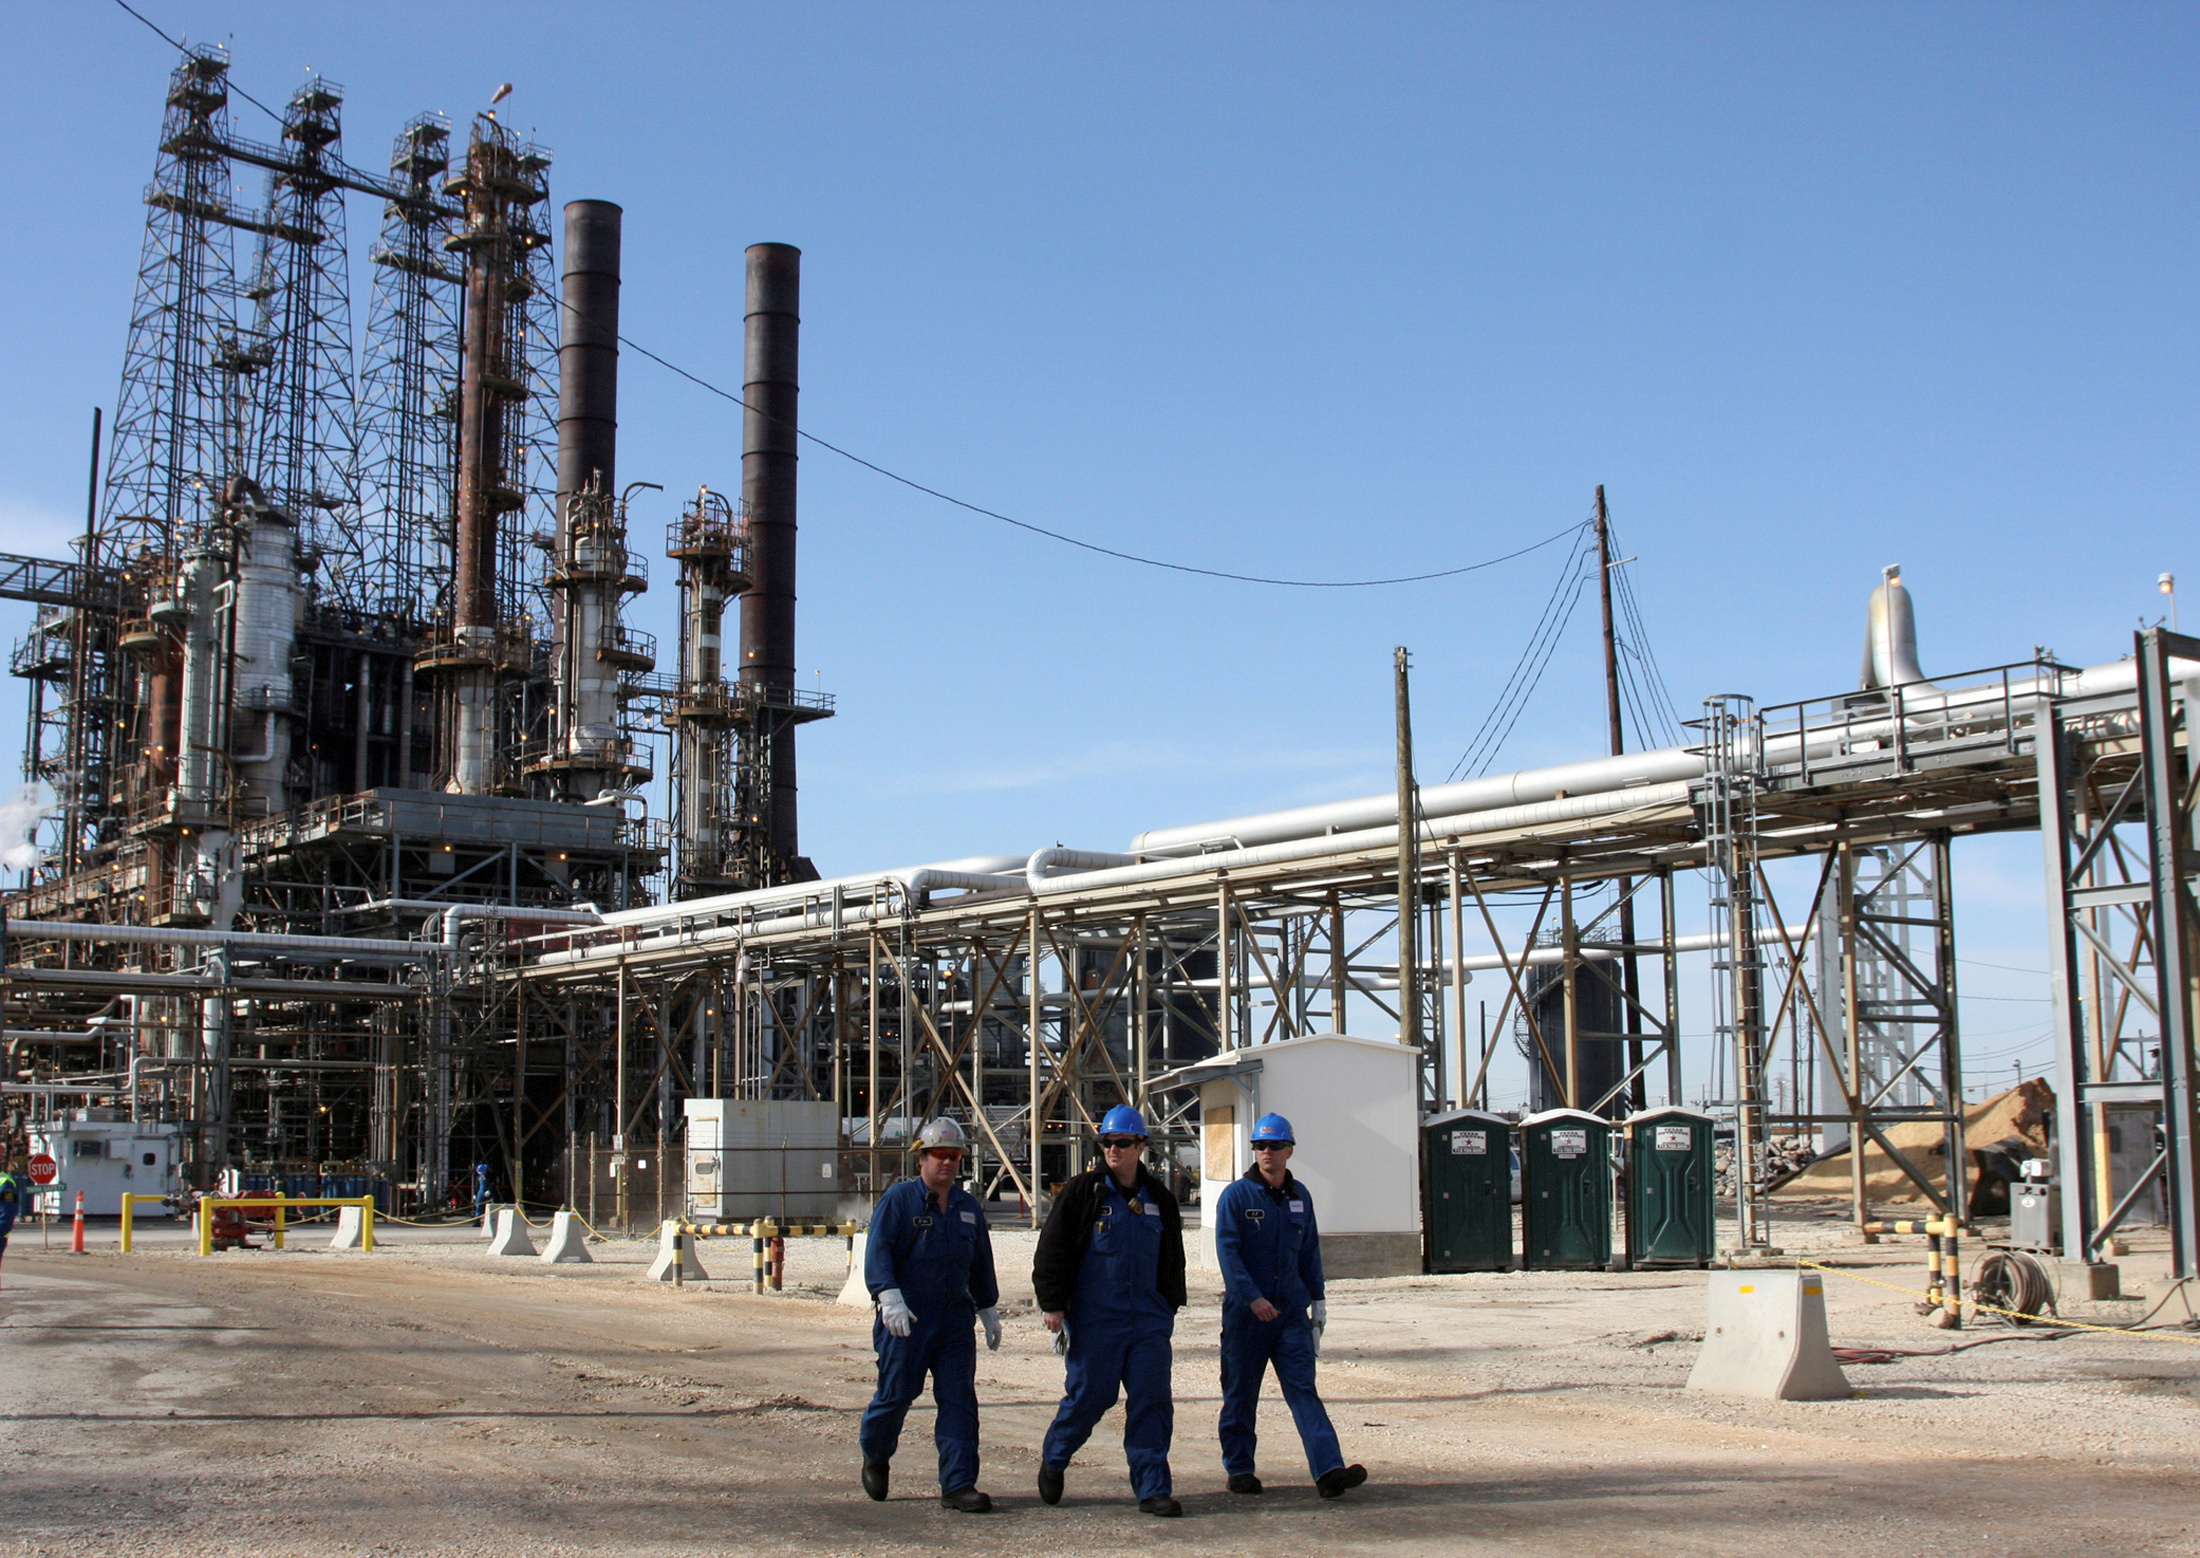 Refinery workers walk inside the LyondellBasell oil refinery in Houston, Texas March 6, 2013. REUTERS/Donna Carson/File Photo